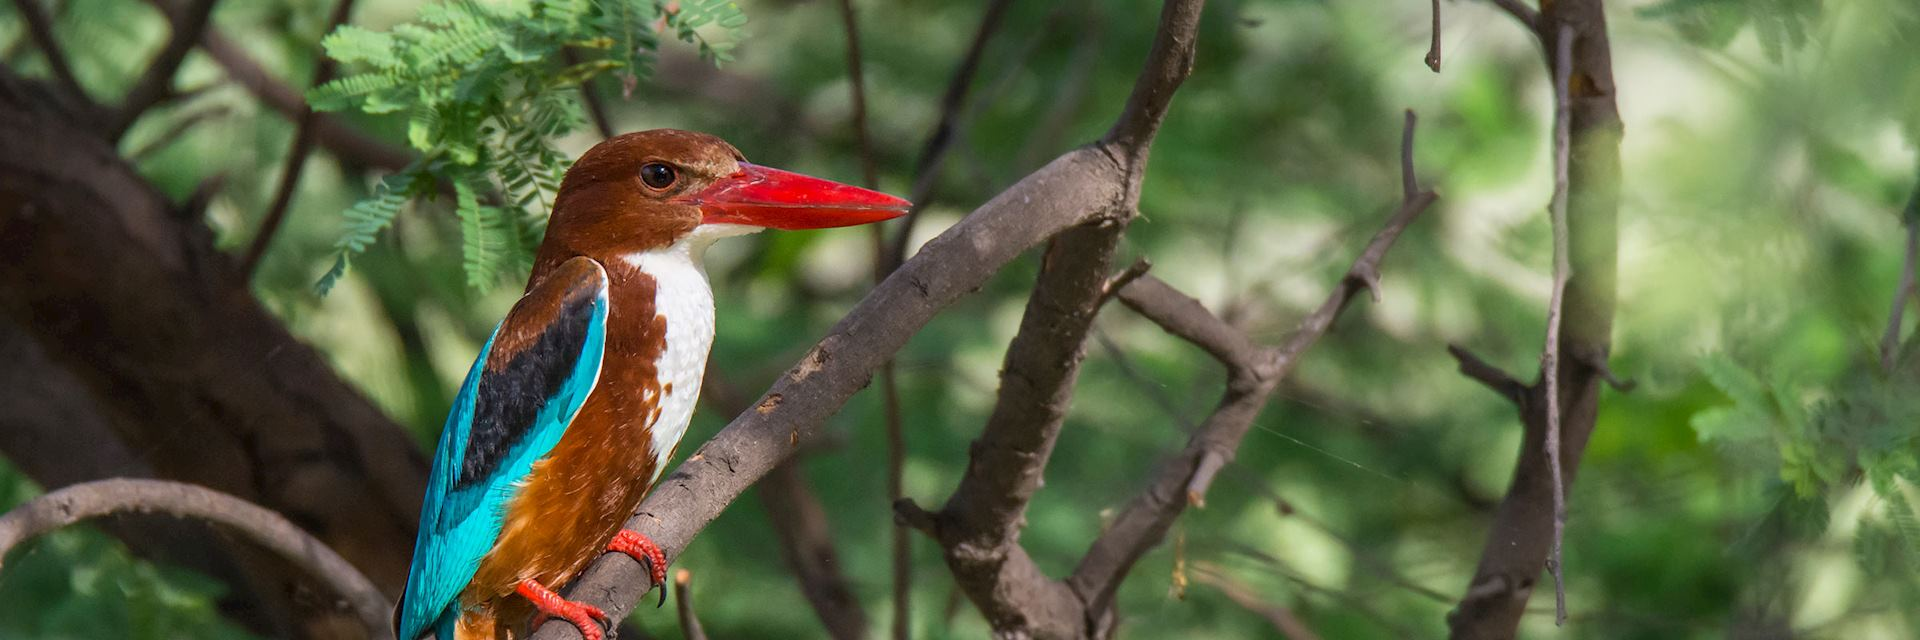 White-throated kingfisher in Keoladeo National Park